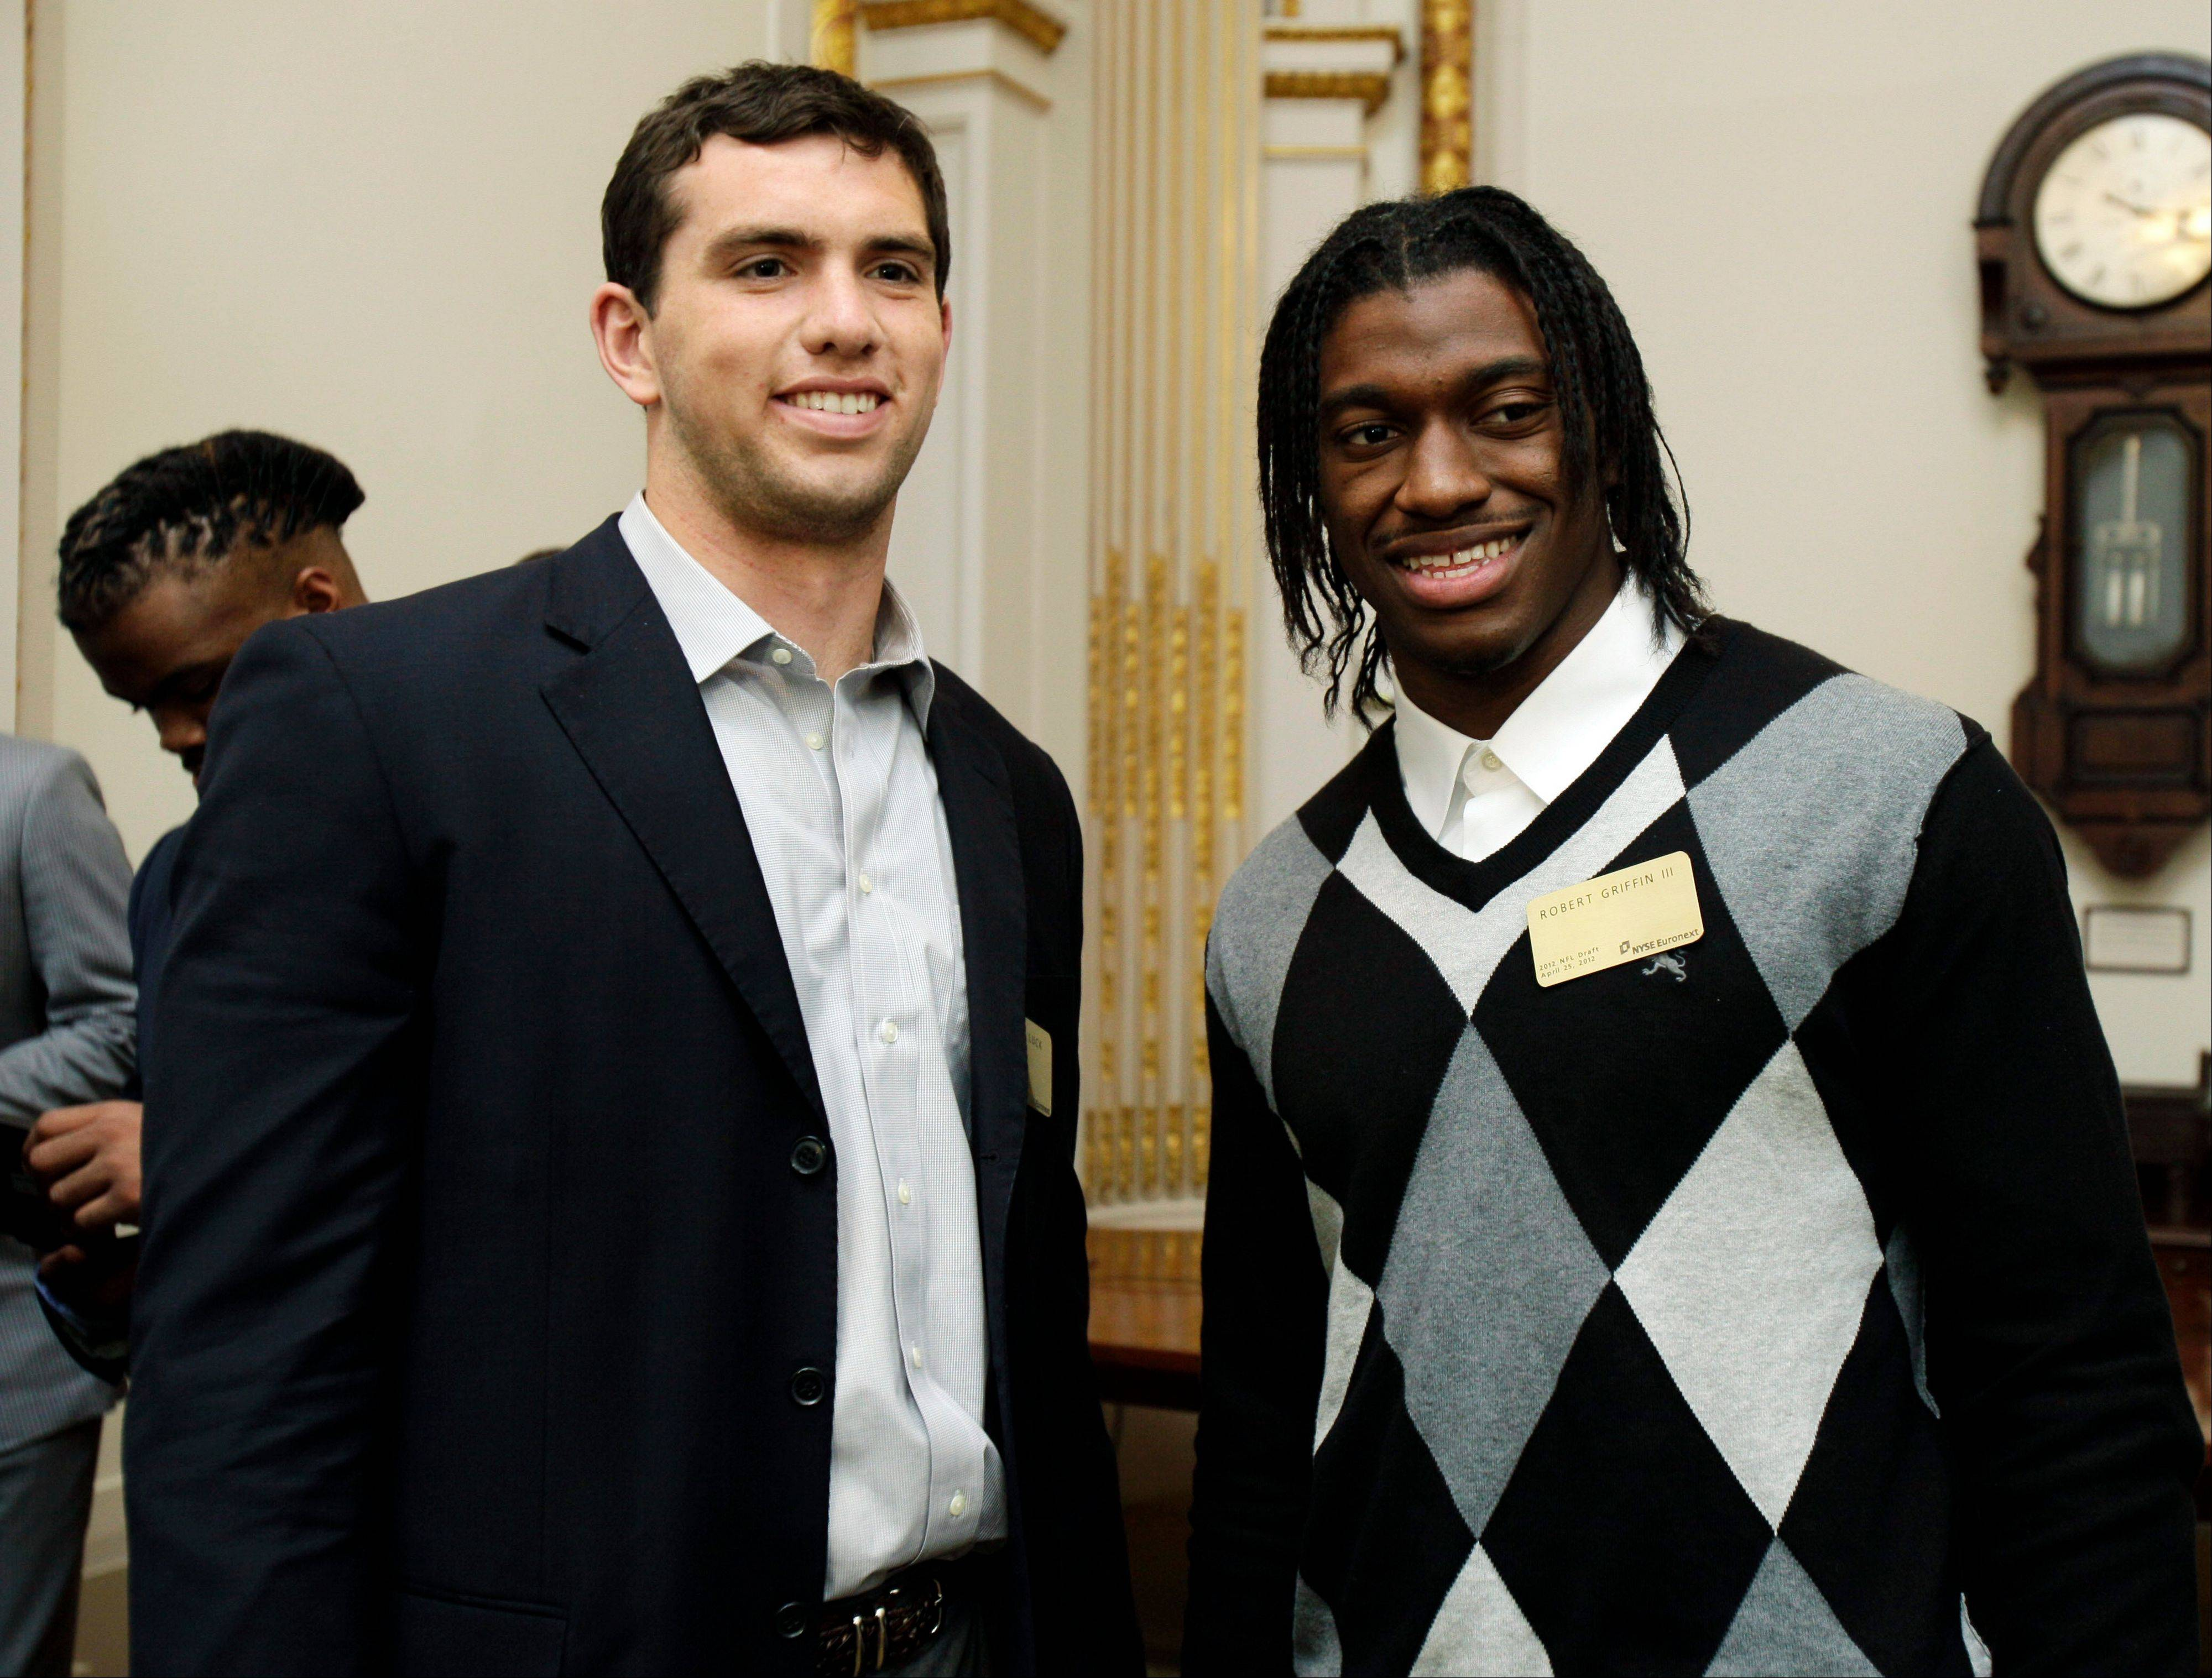 NFL football draft prospects Andrew Luck, left, of Stanford, and Robert Griffin III, of Baylor, attend a reception Wednesday during their visit to the trading floor of the New York Stock Exchange. With no doubt who the top two picks are, Minnesota is unofficially on the clock.